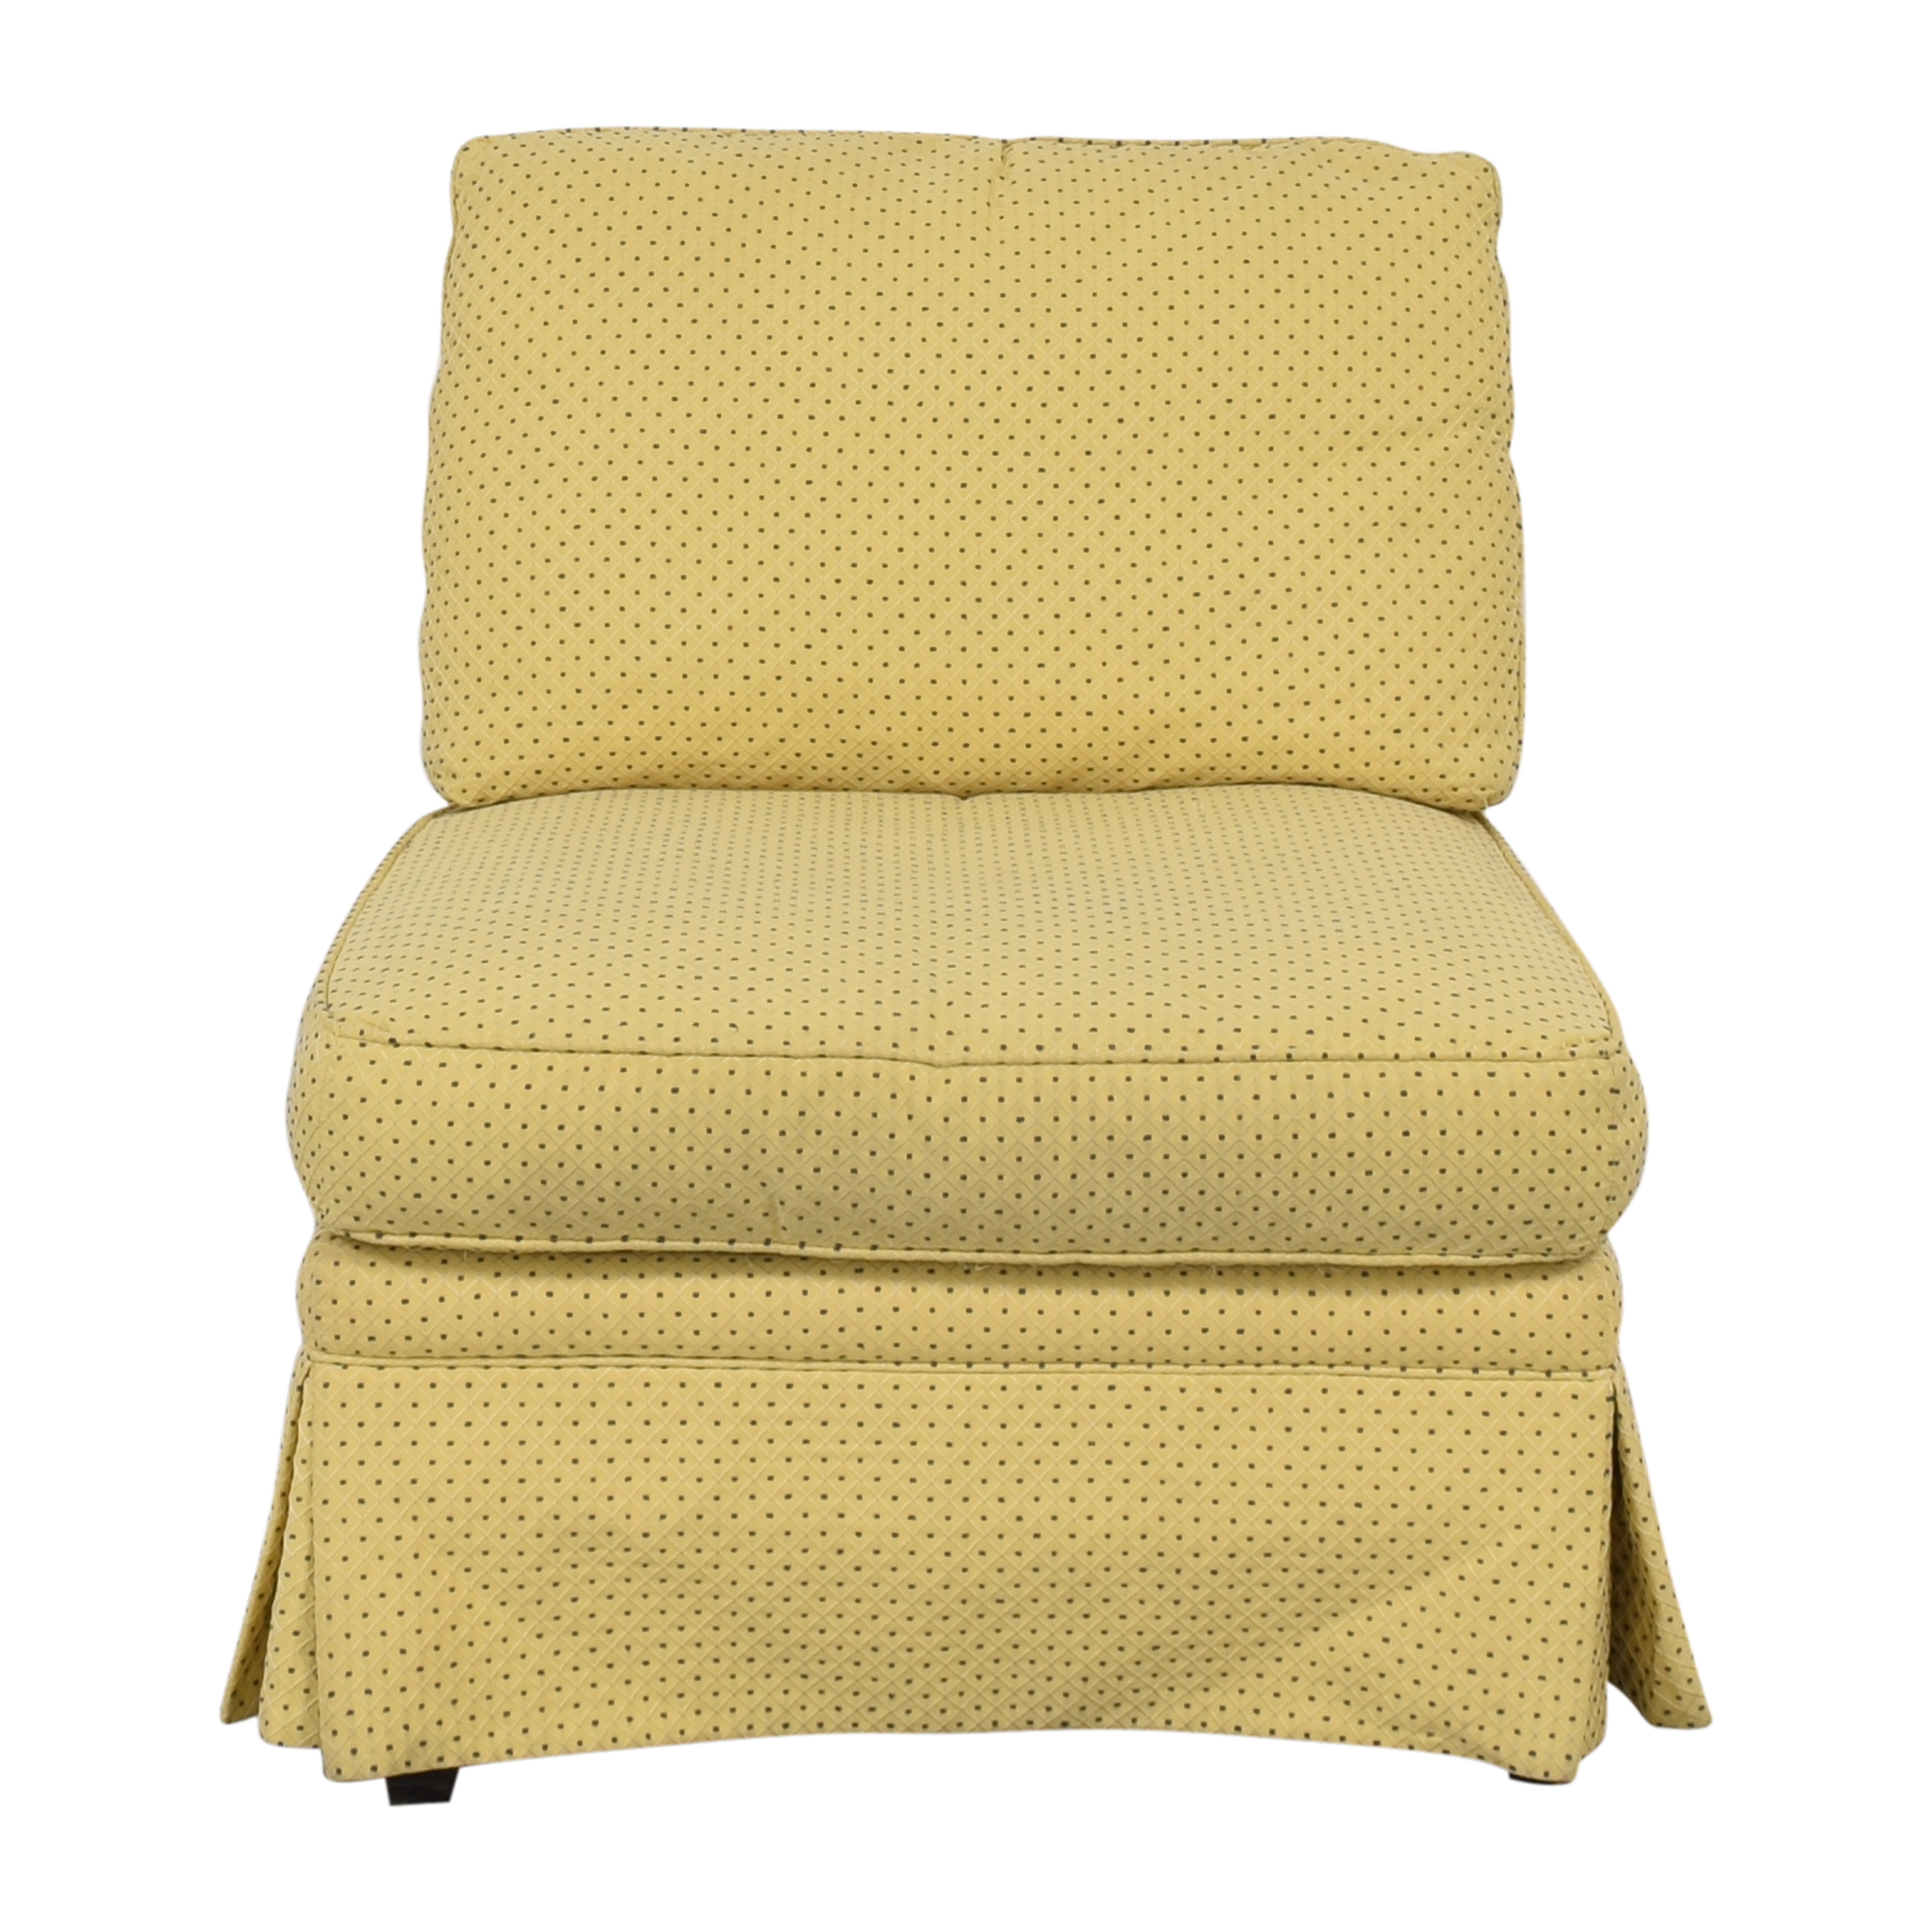 Sherrill Furniture Sherrill Furniture Upholstered Chair nyc